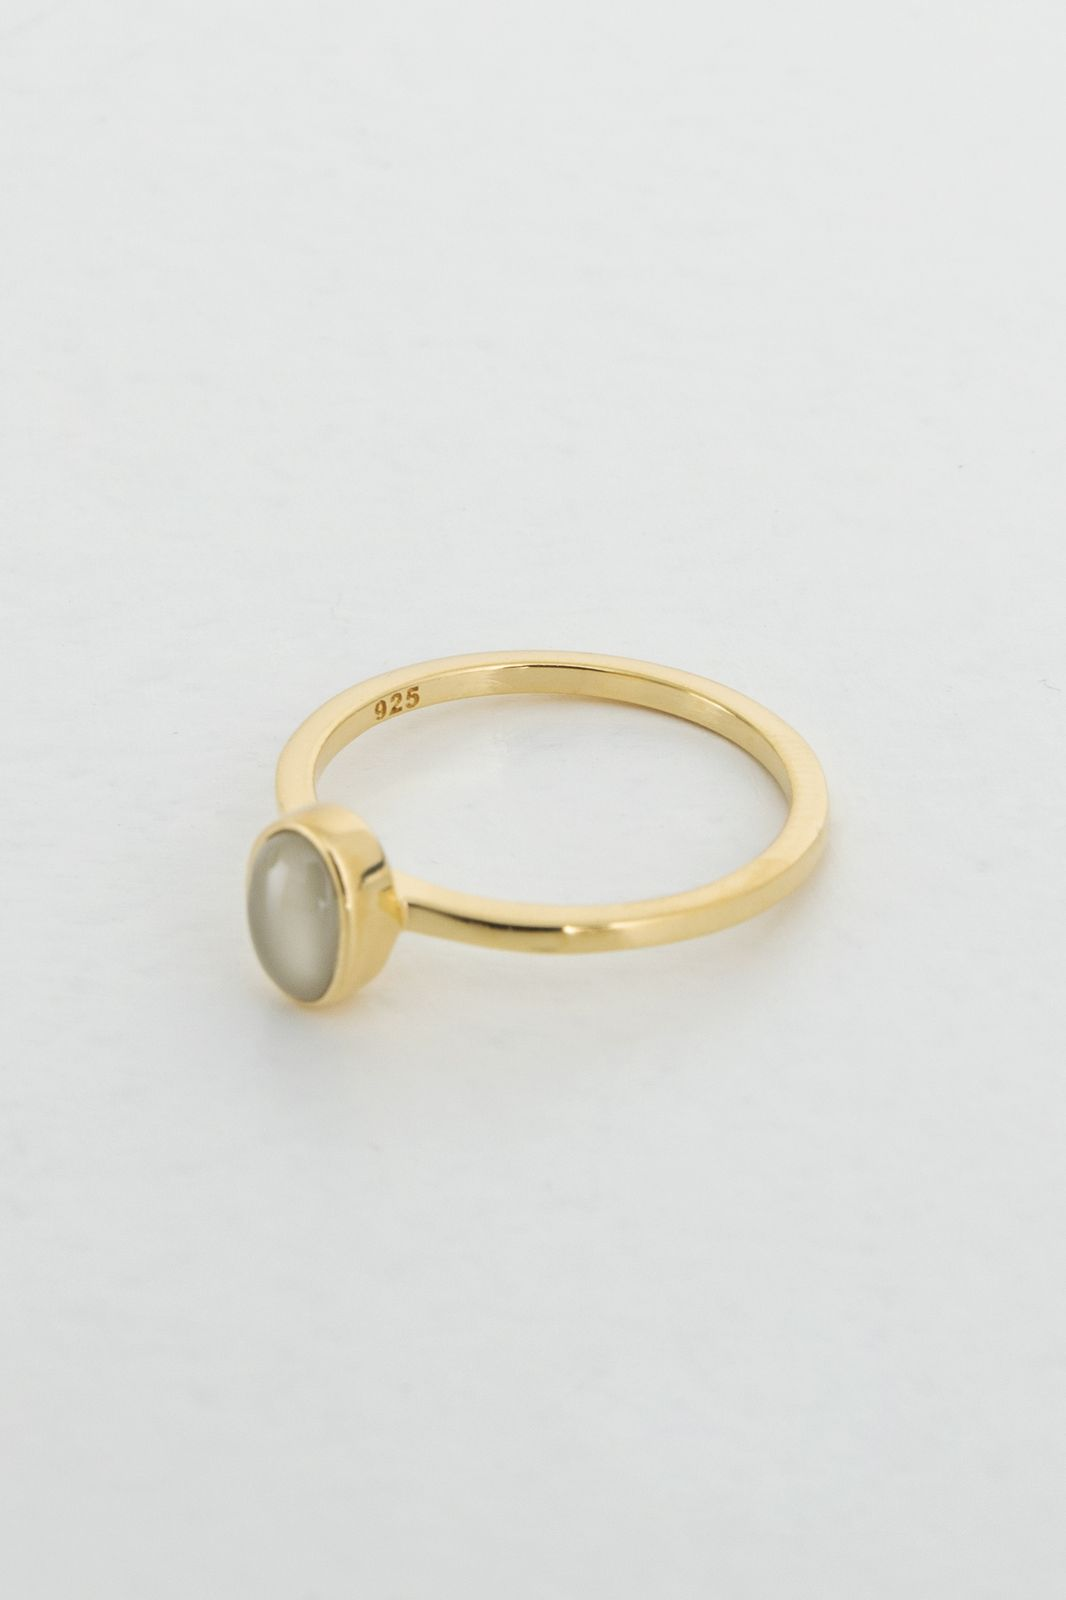 A Brend goldplated ring Ozur